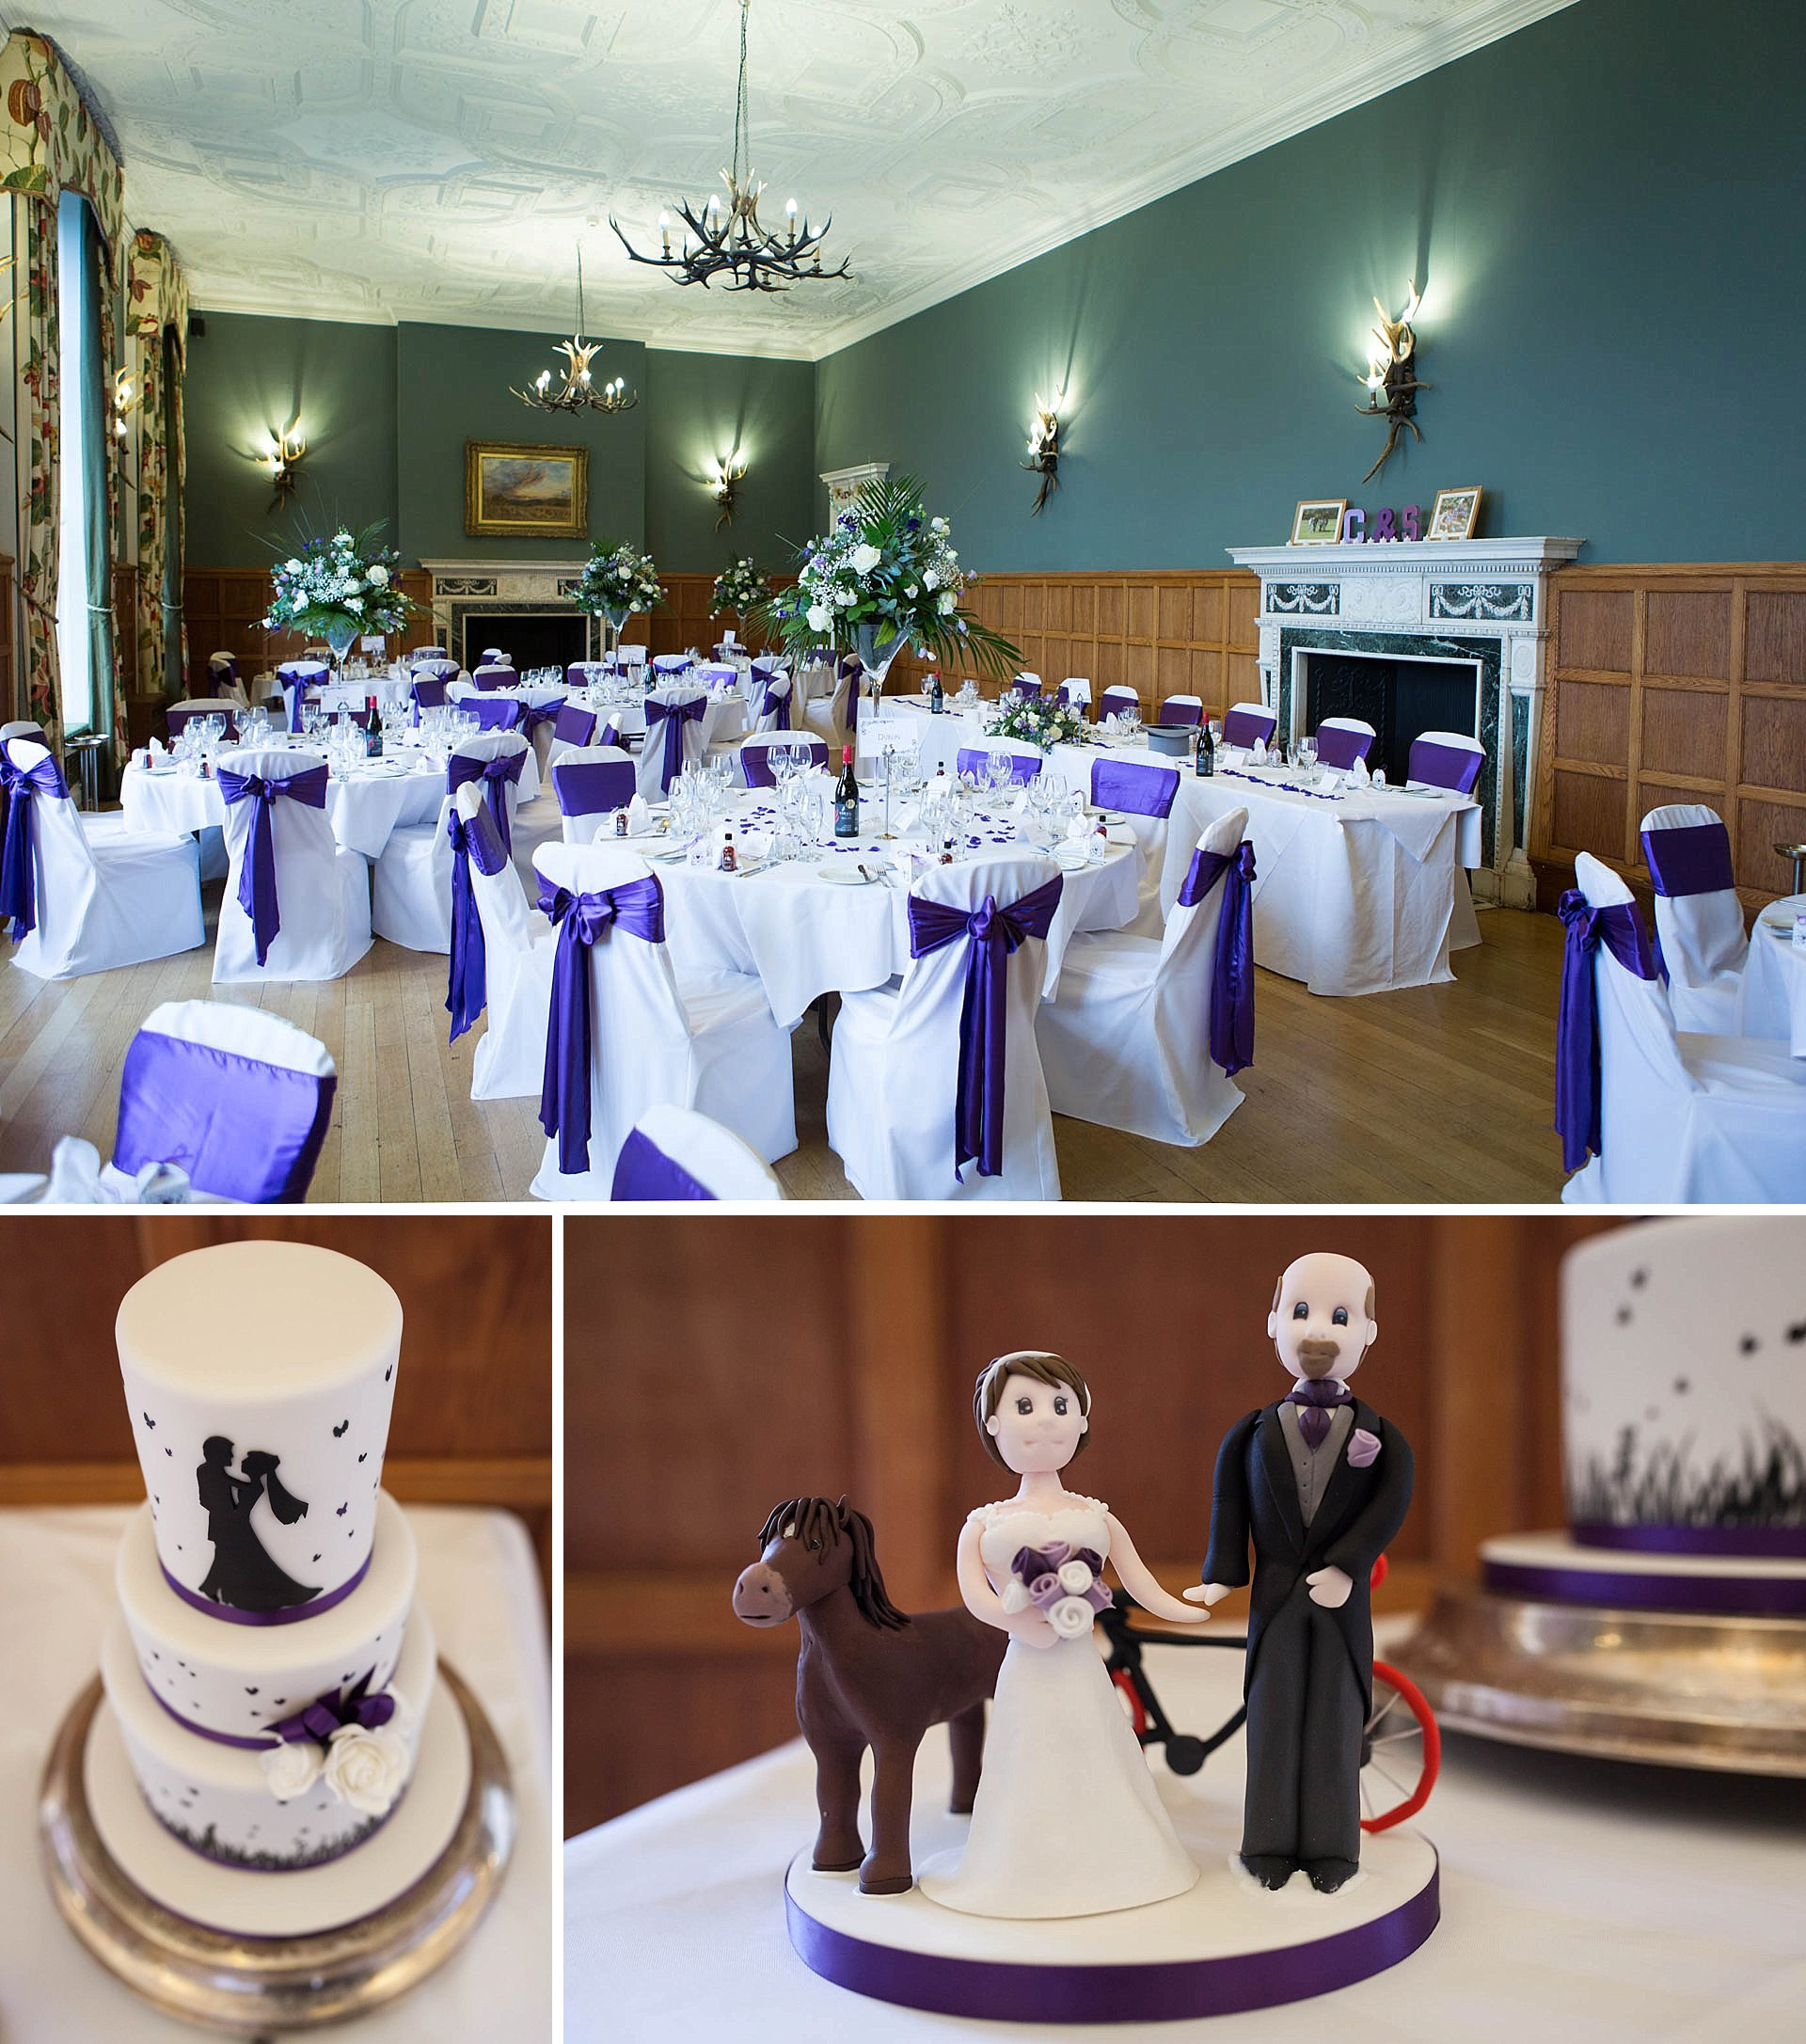 Eynsham - Oxfordshire wedding venue